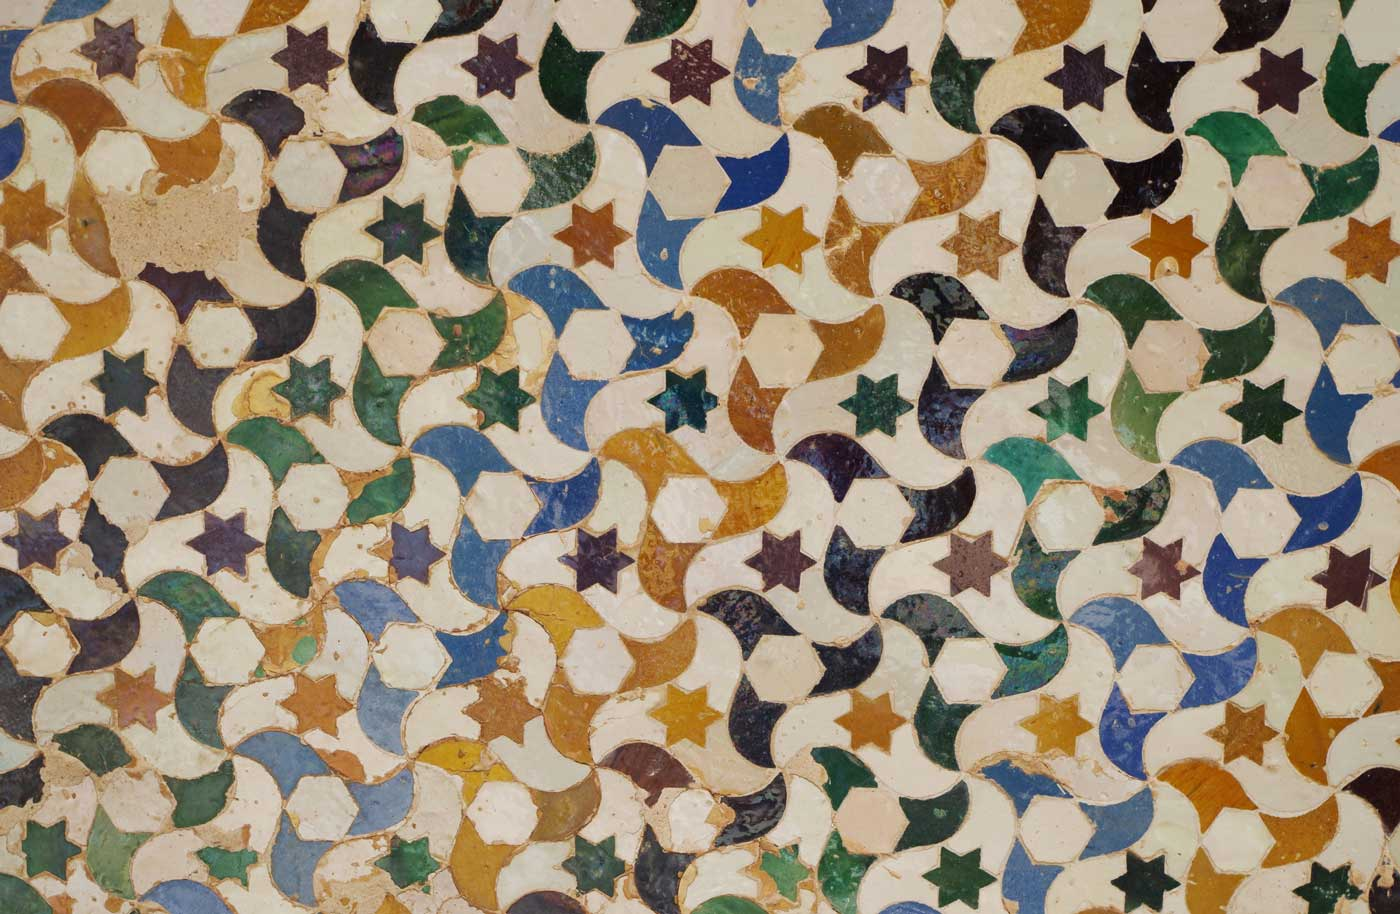 Islamic geometric pattern at the Alhambra Palace